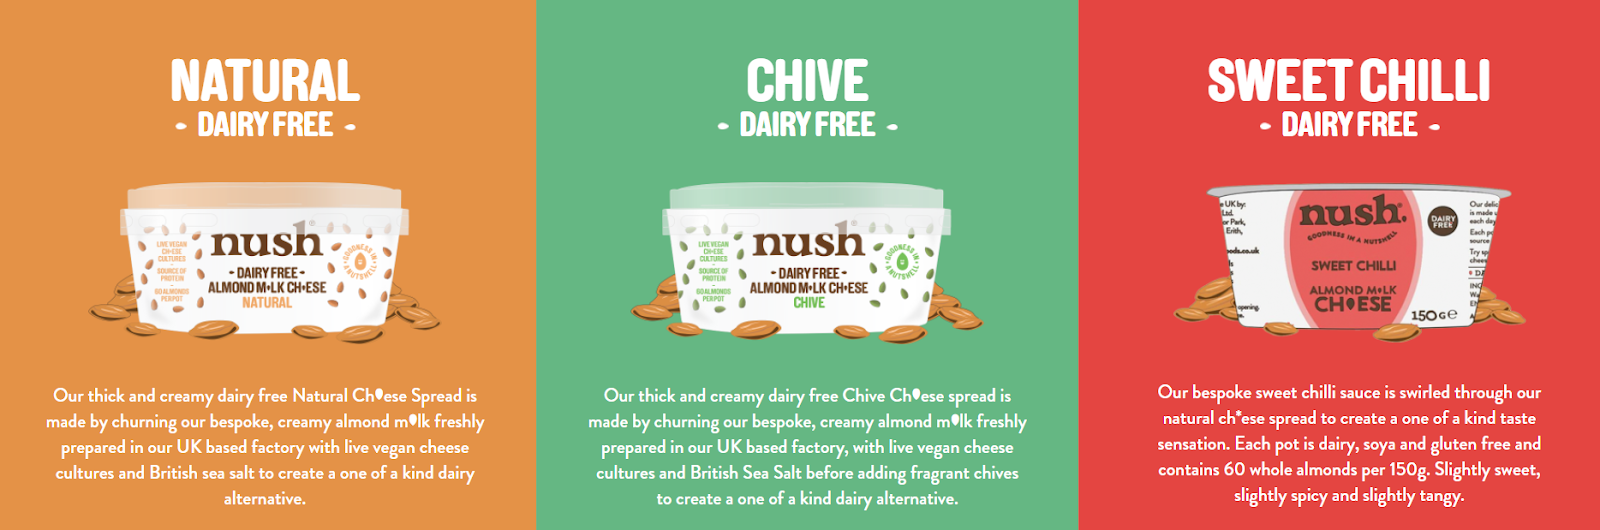 Nush dairy free almond milk cheese